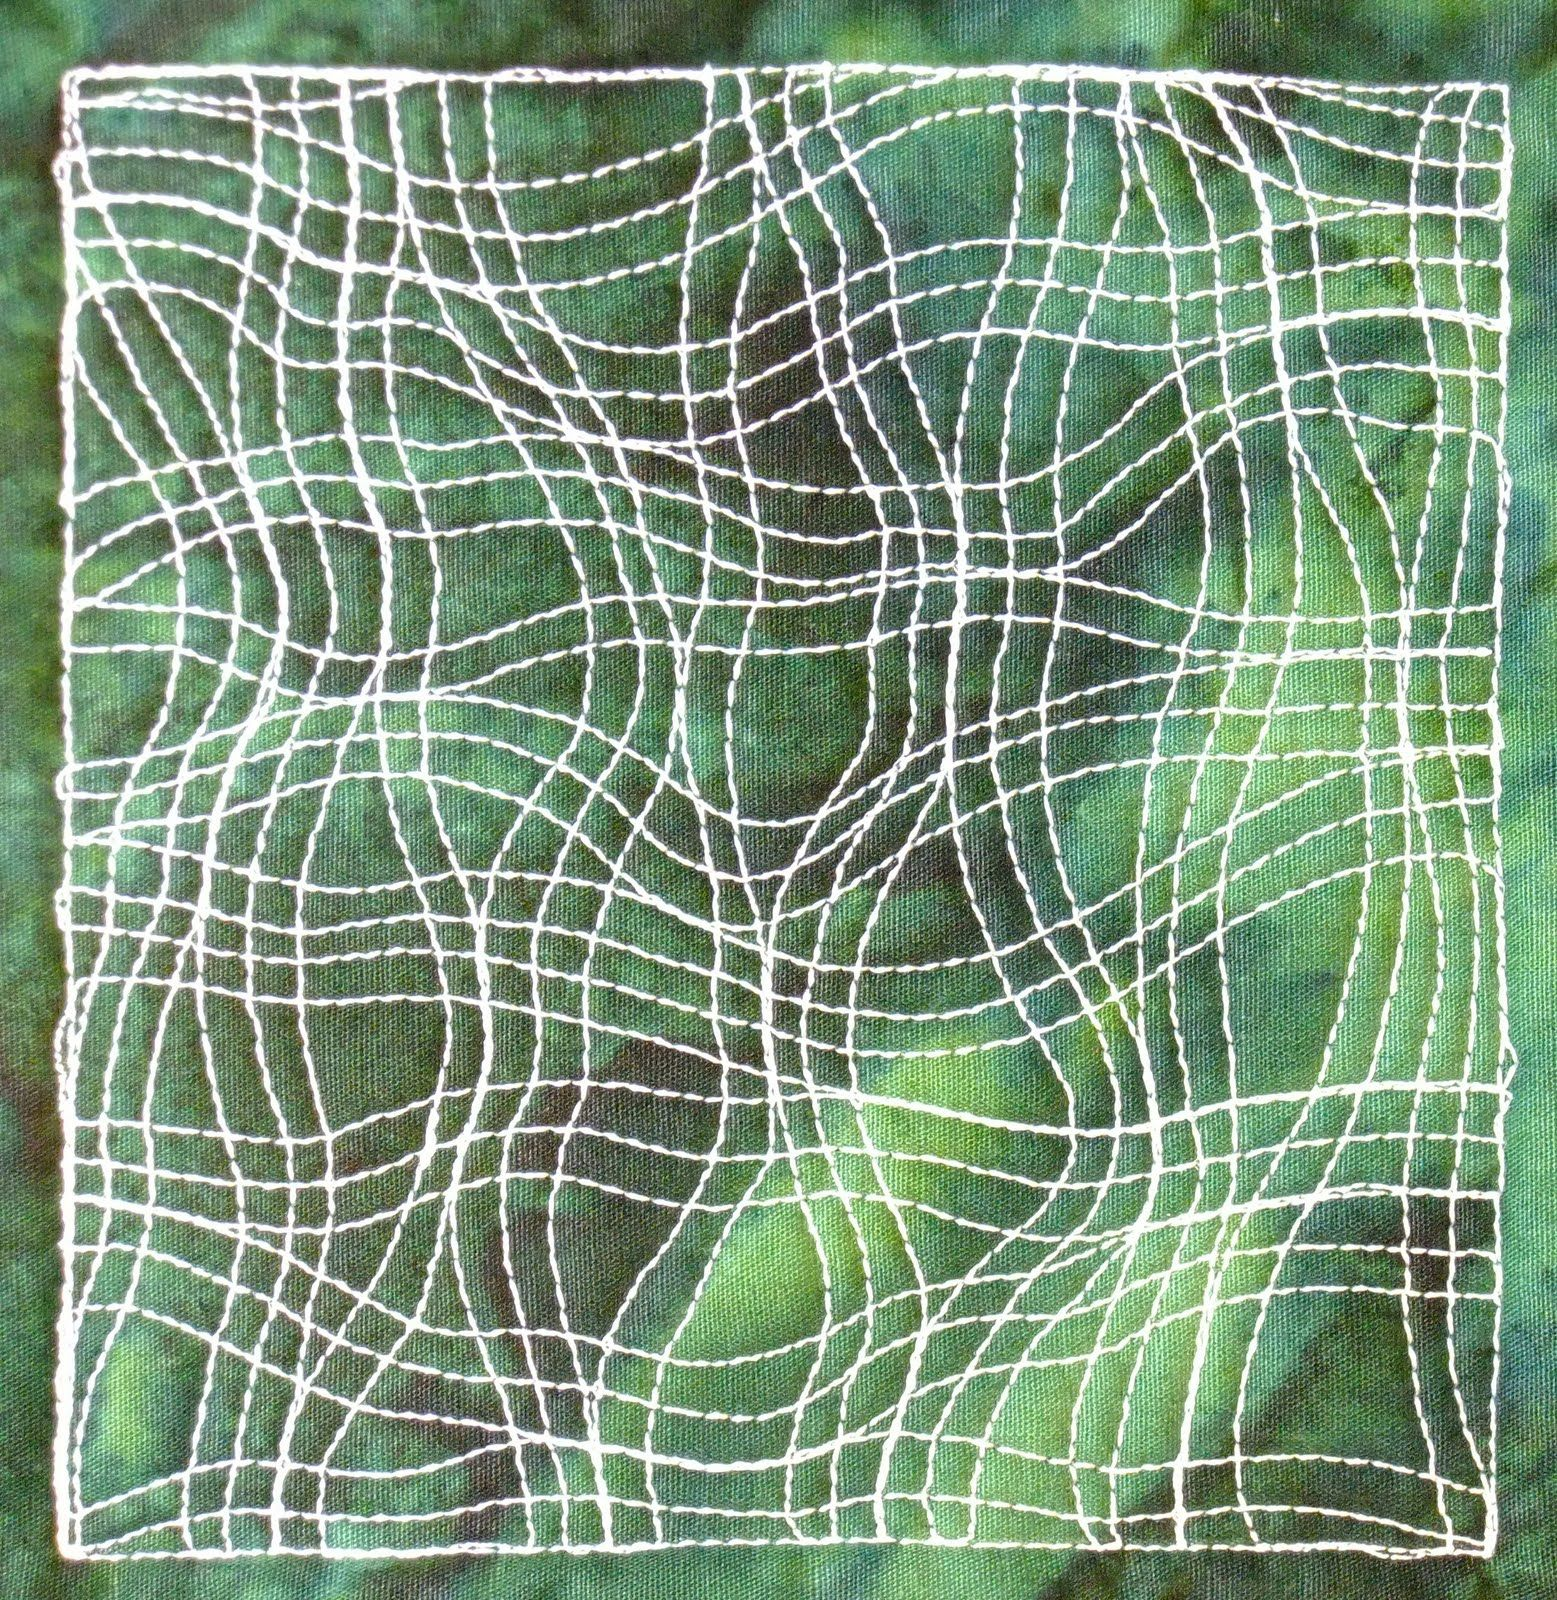 Learn more about free motion quilting through hundreds of free ... : the free motion quilting project - Adamdwight.com